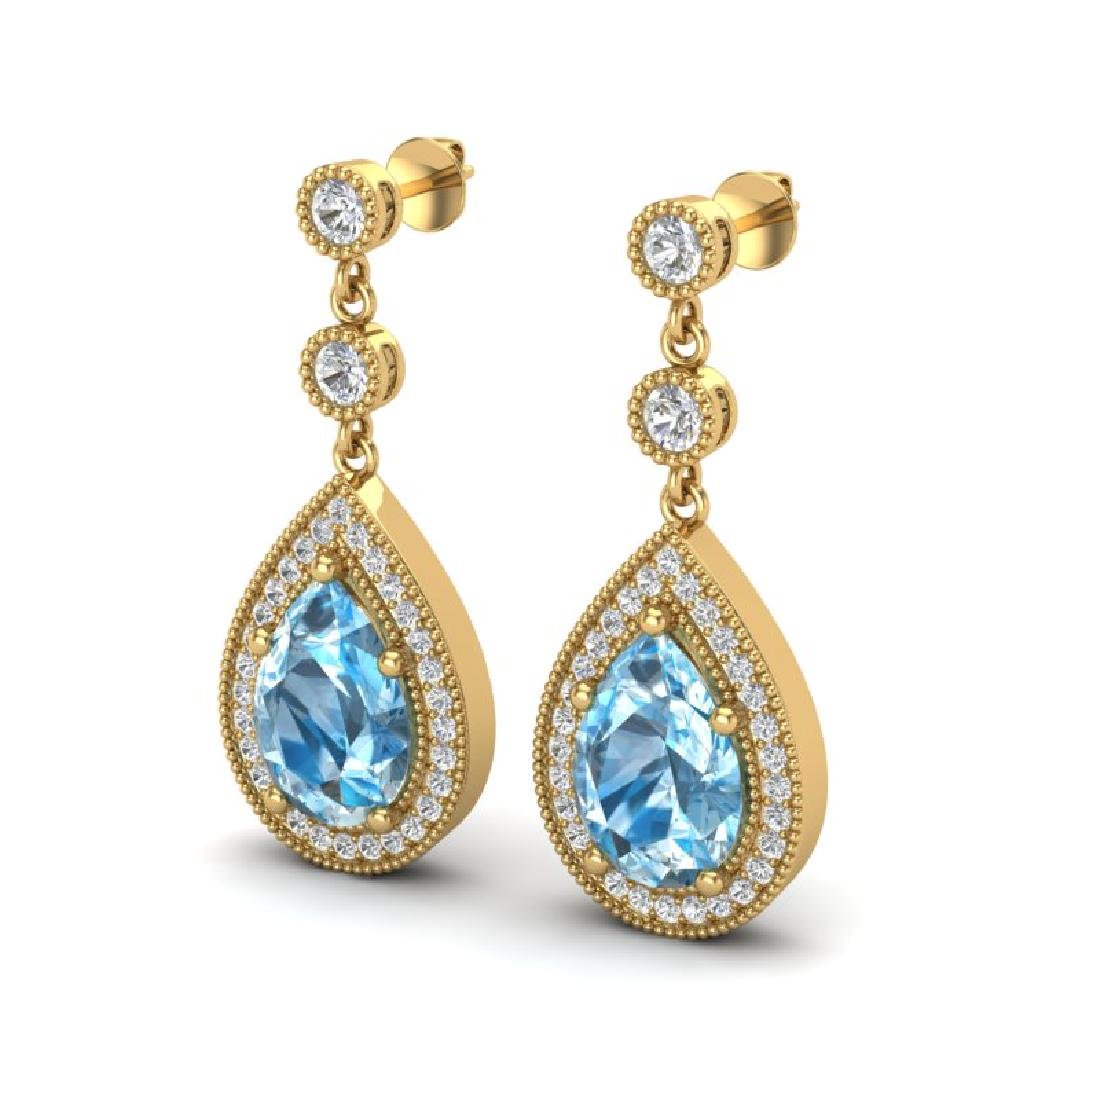 7.50 CTW Sky Topaz & Micro Pave VS/SI Diamond Earrings